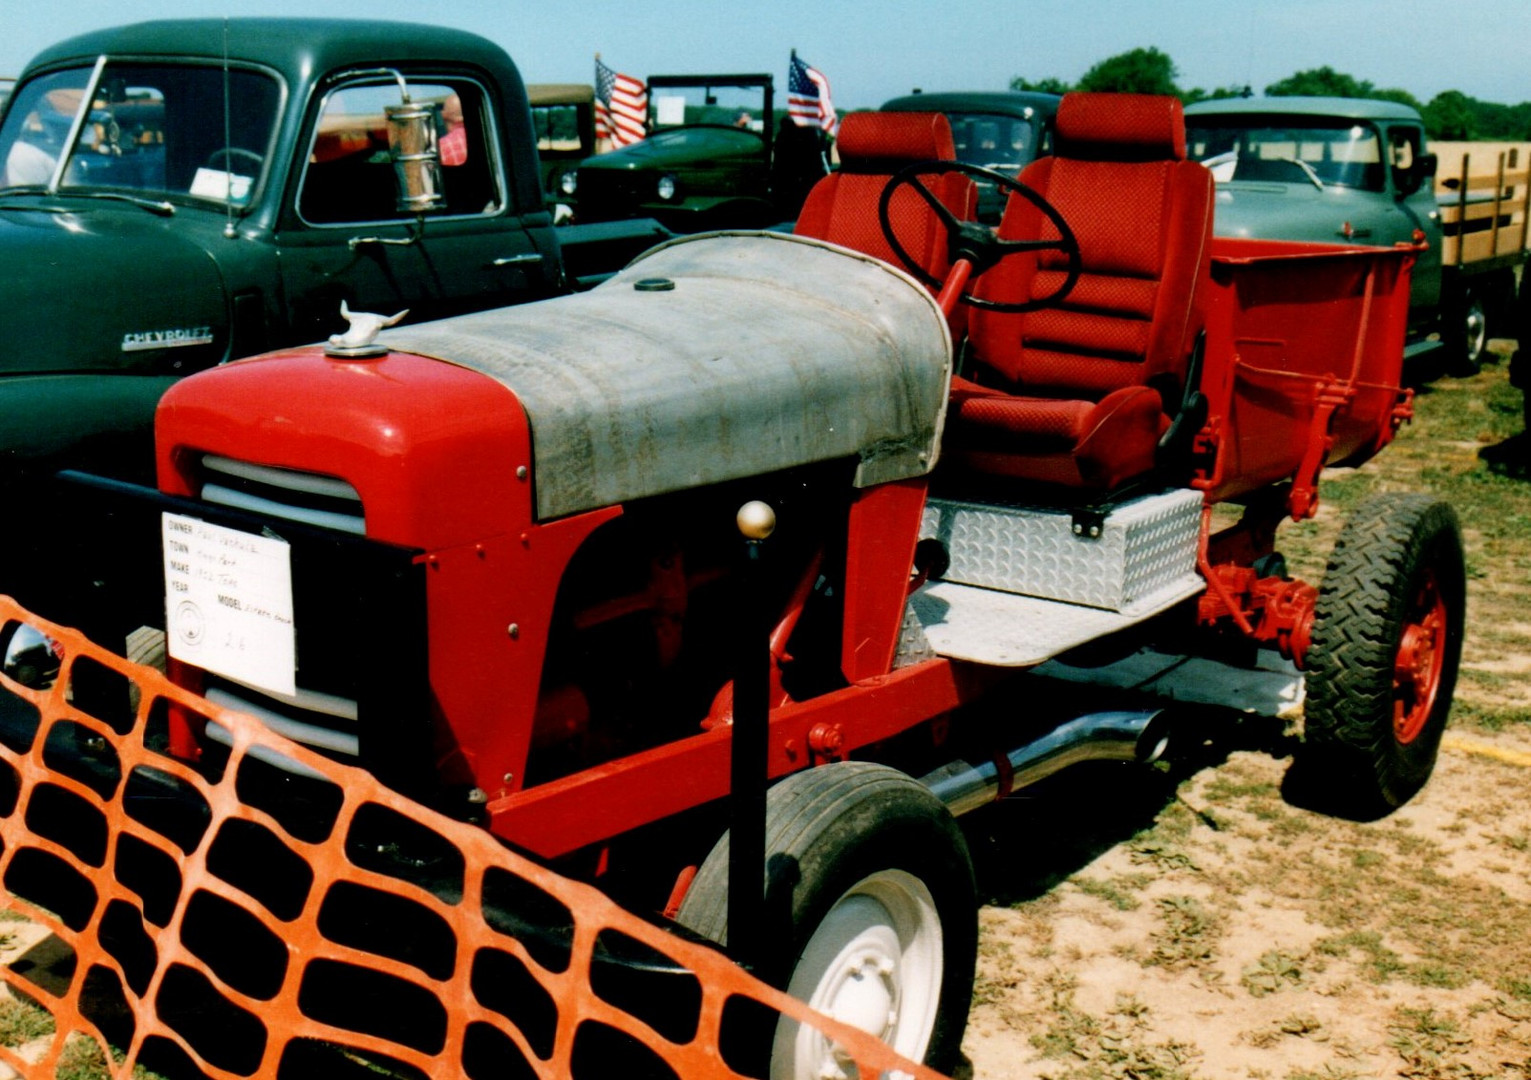 1953 Toro Estate tractor -Paul Vachula